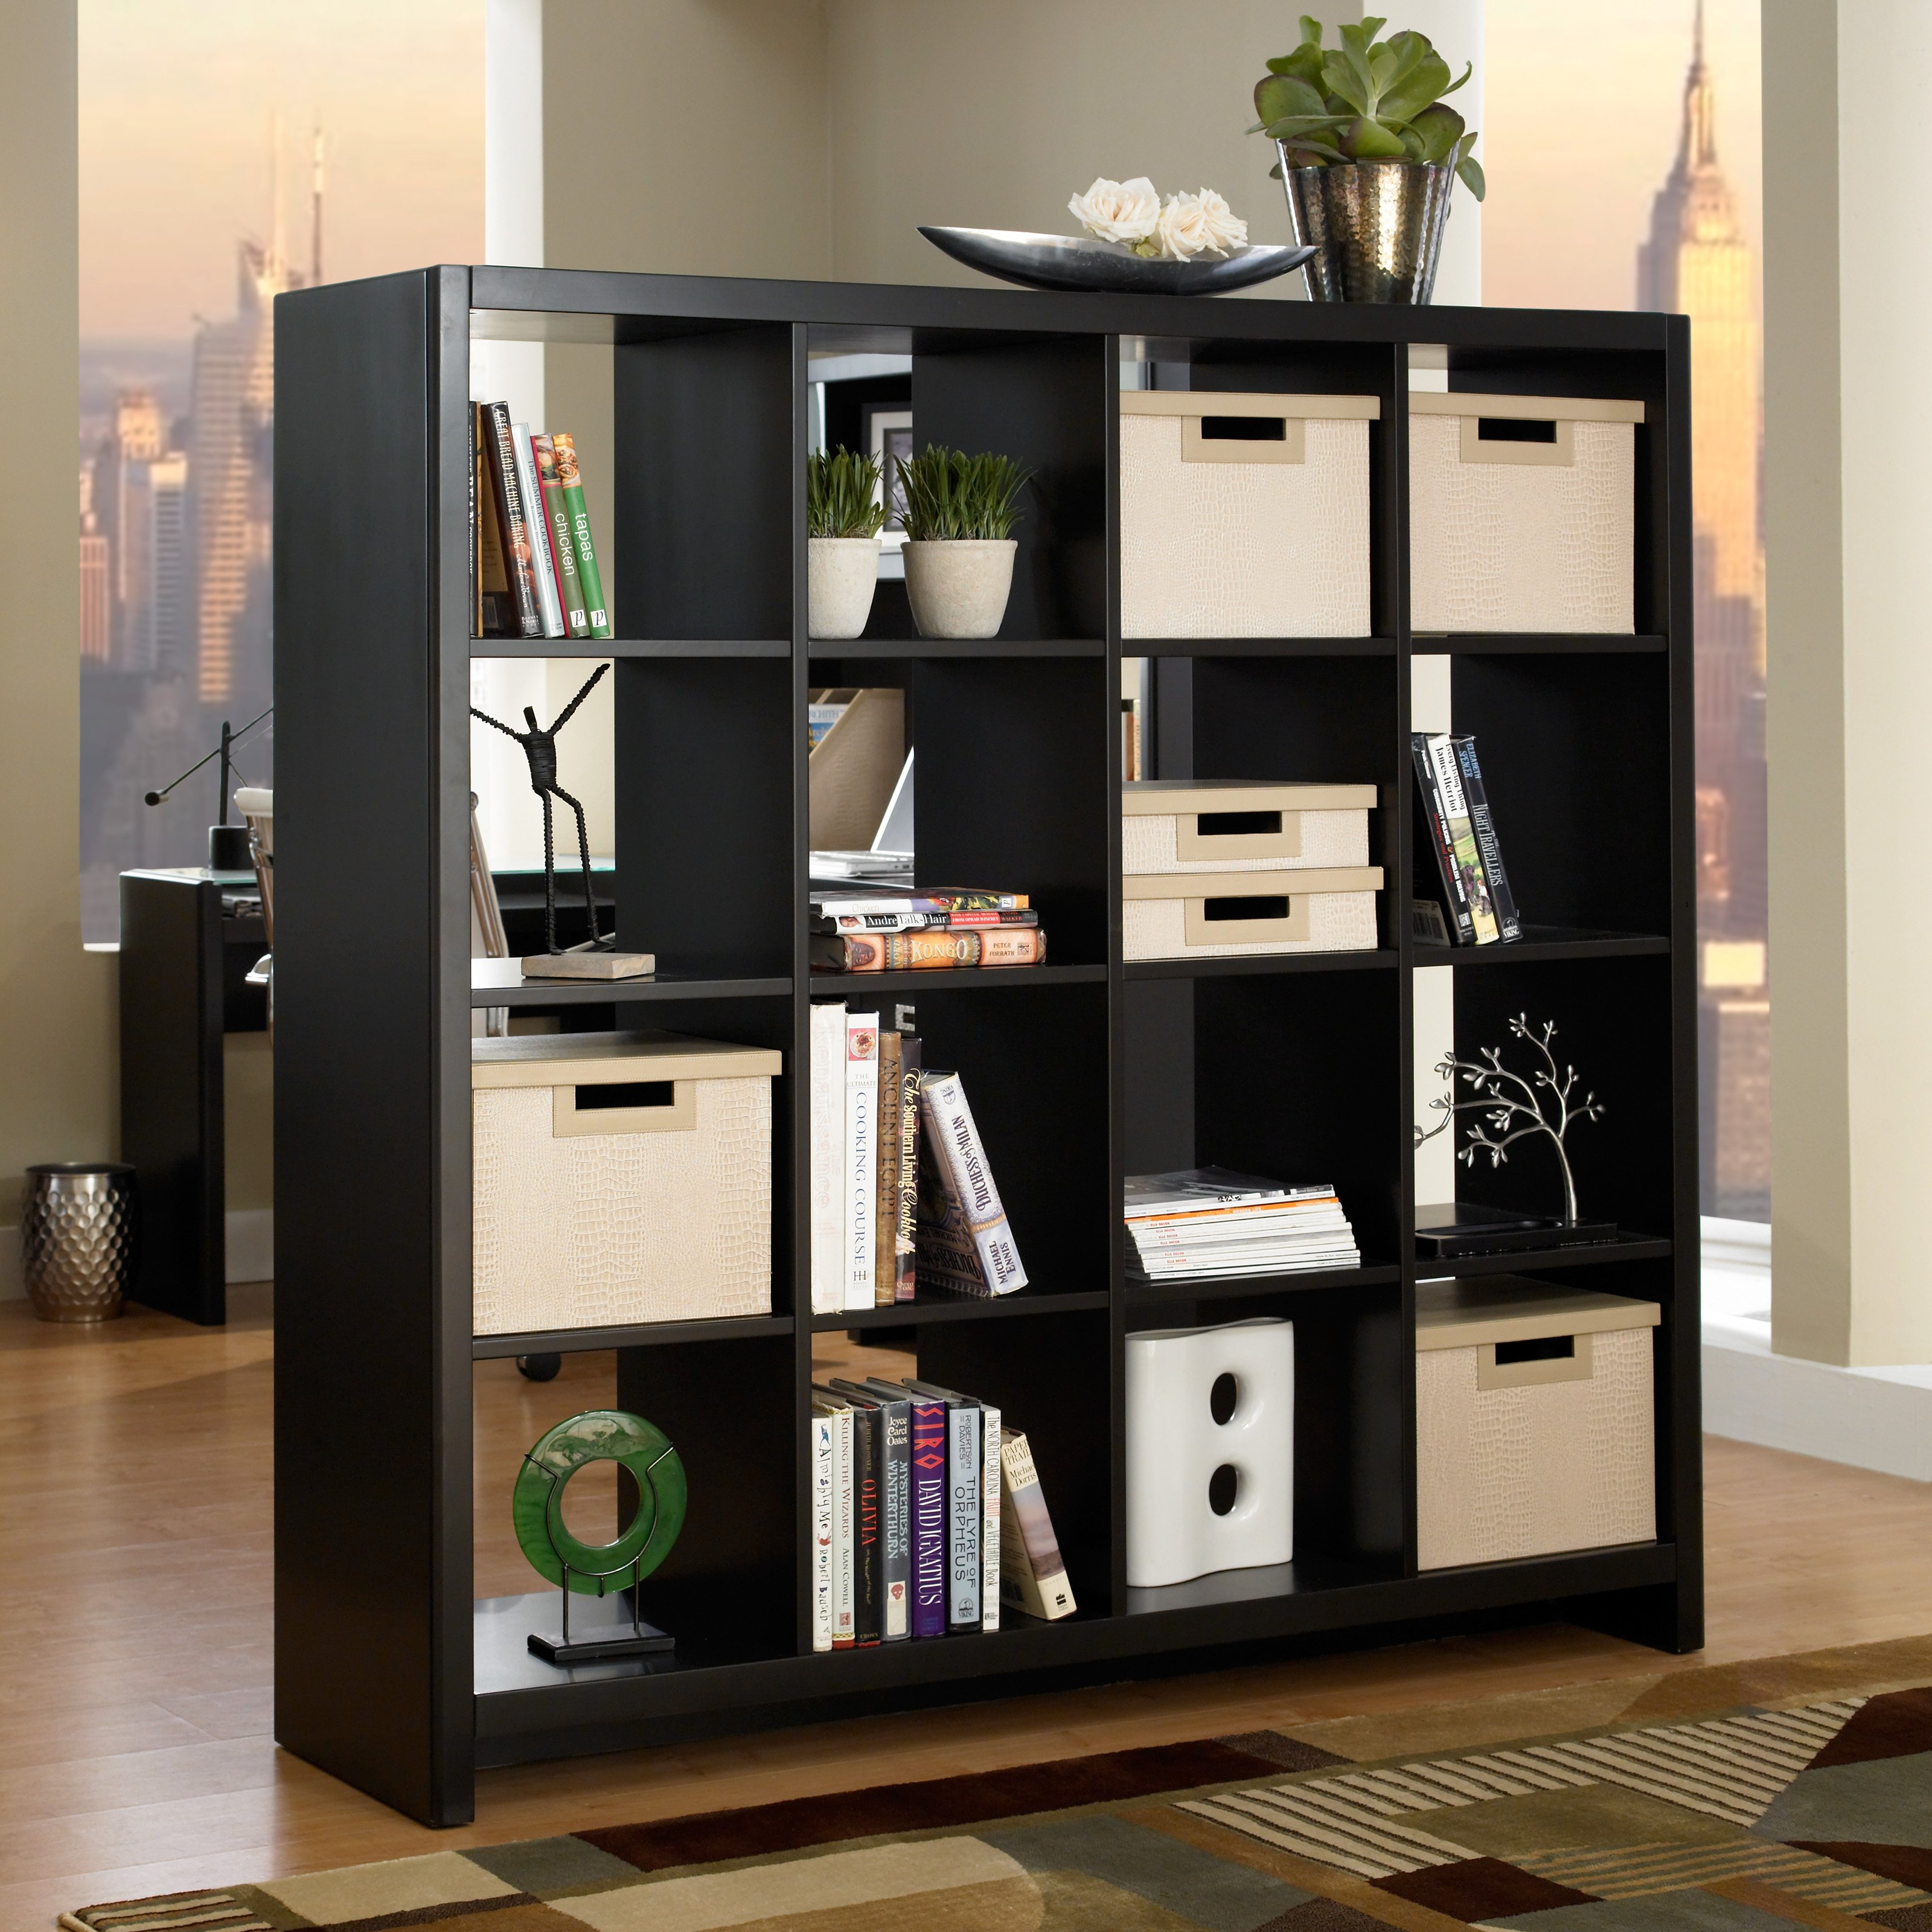 Unique Bookshelves For Small Rooms